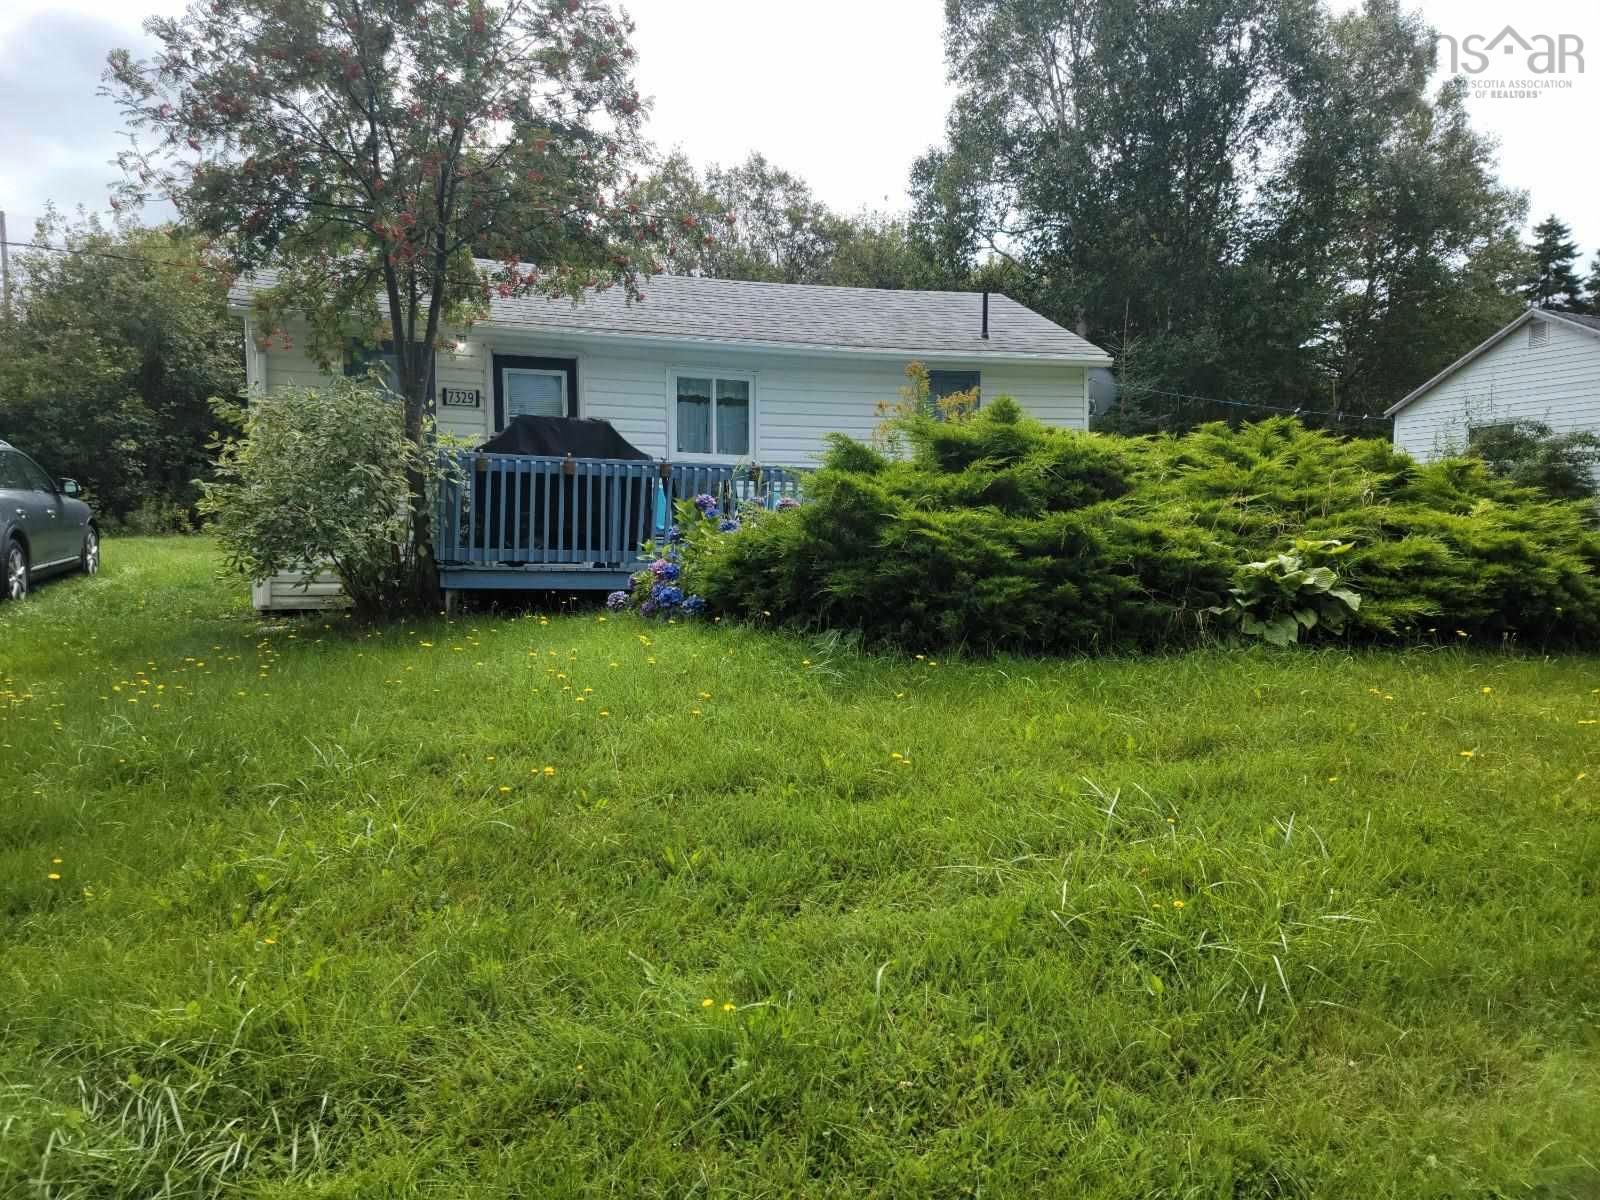 Main Photo: 7329 East Bay Highway in Big Pond: 207-C. B. County Residential for sale (Cape Breton)  : MLS®# 202122939